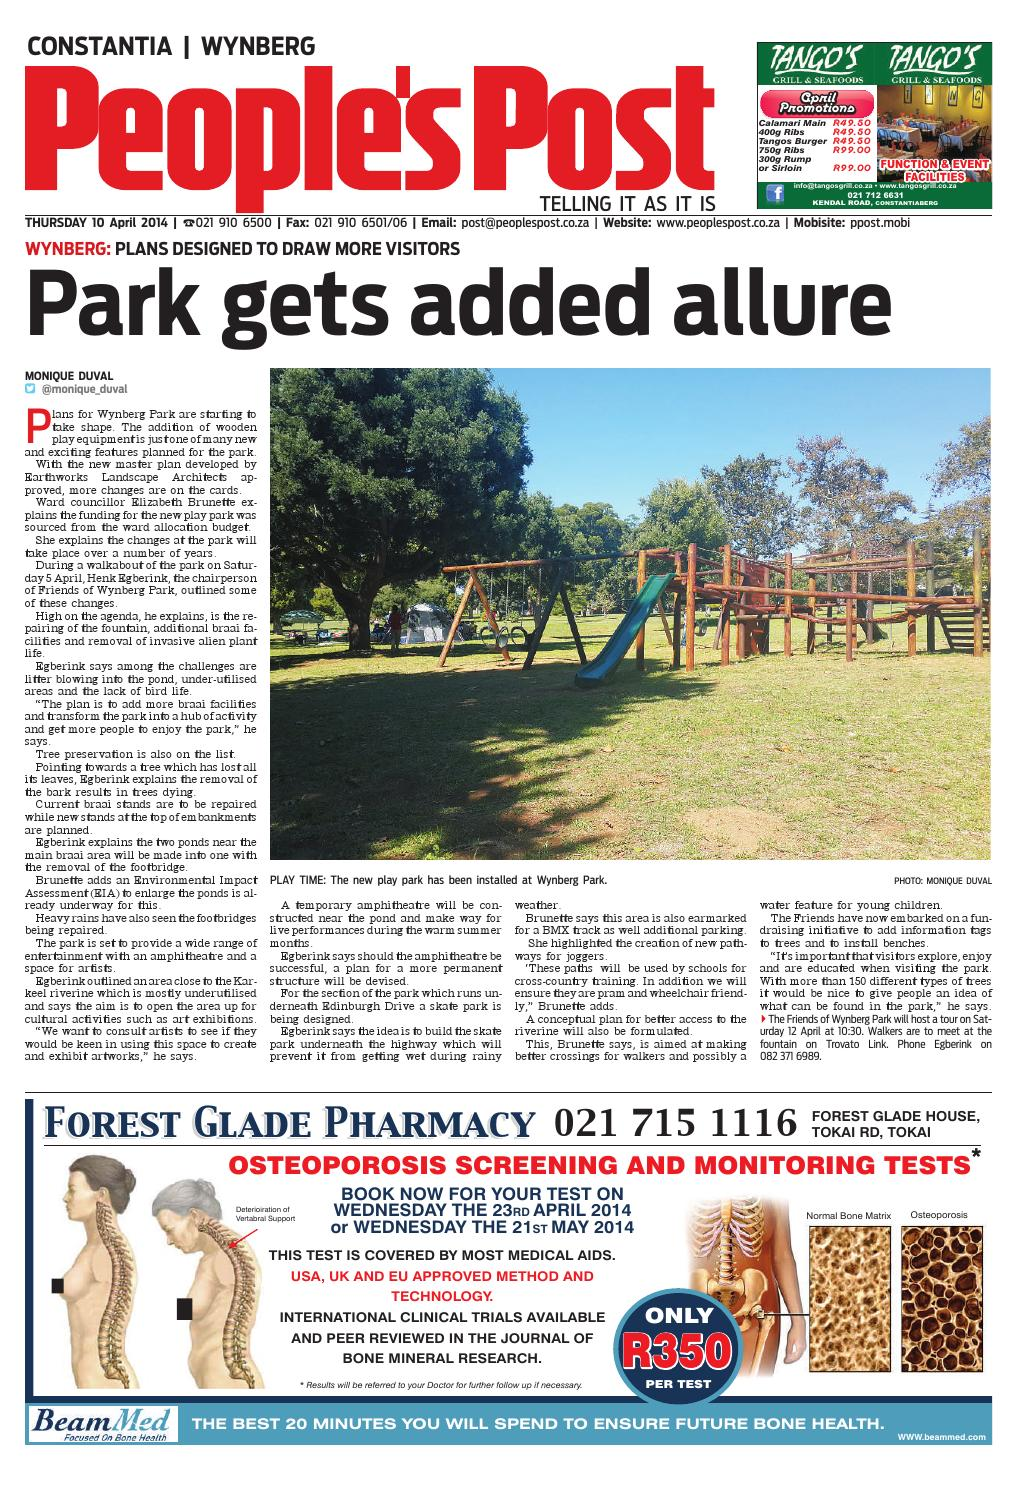 Peoples post constantia 10 apr 2014 by People's Post - issuu